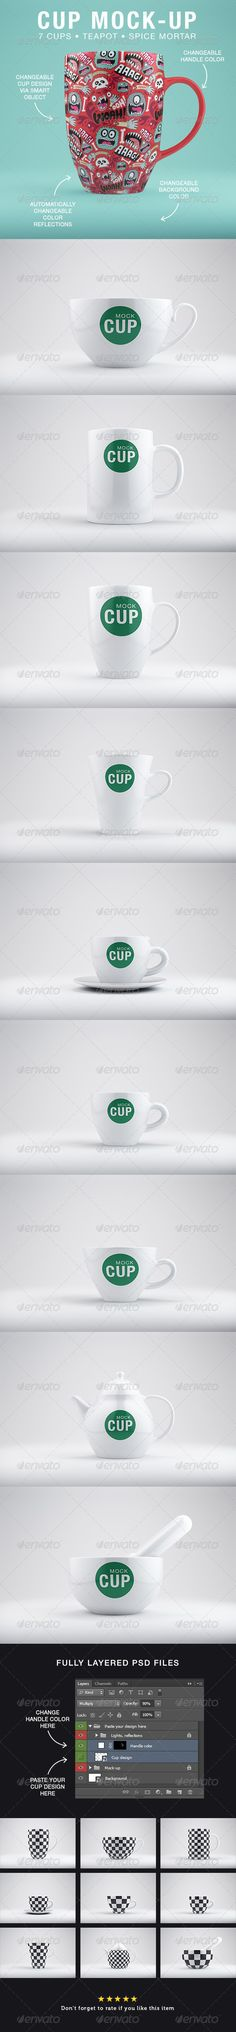 Such a simple element is shown in a ton of different styles. A cup is one of those things that we take for granite each day. There are truly a ton of different designs and this mockup shows all of the basic ones. Overall, the constant color and label of each cup makes the viewer focus on the shape. Overall, it is neat to see a variety of mugs.